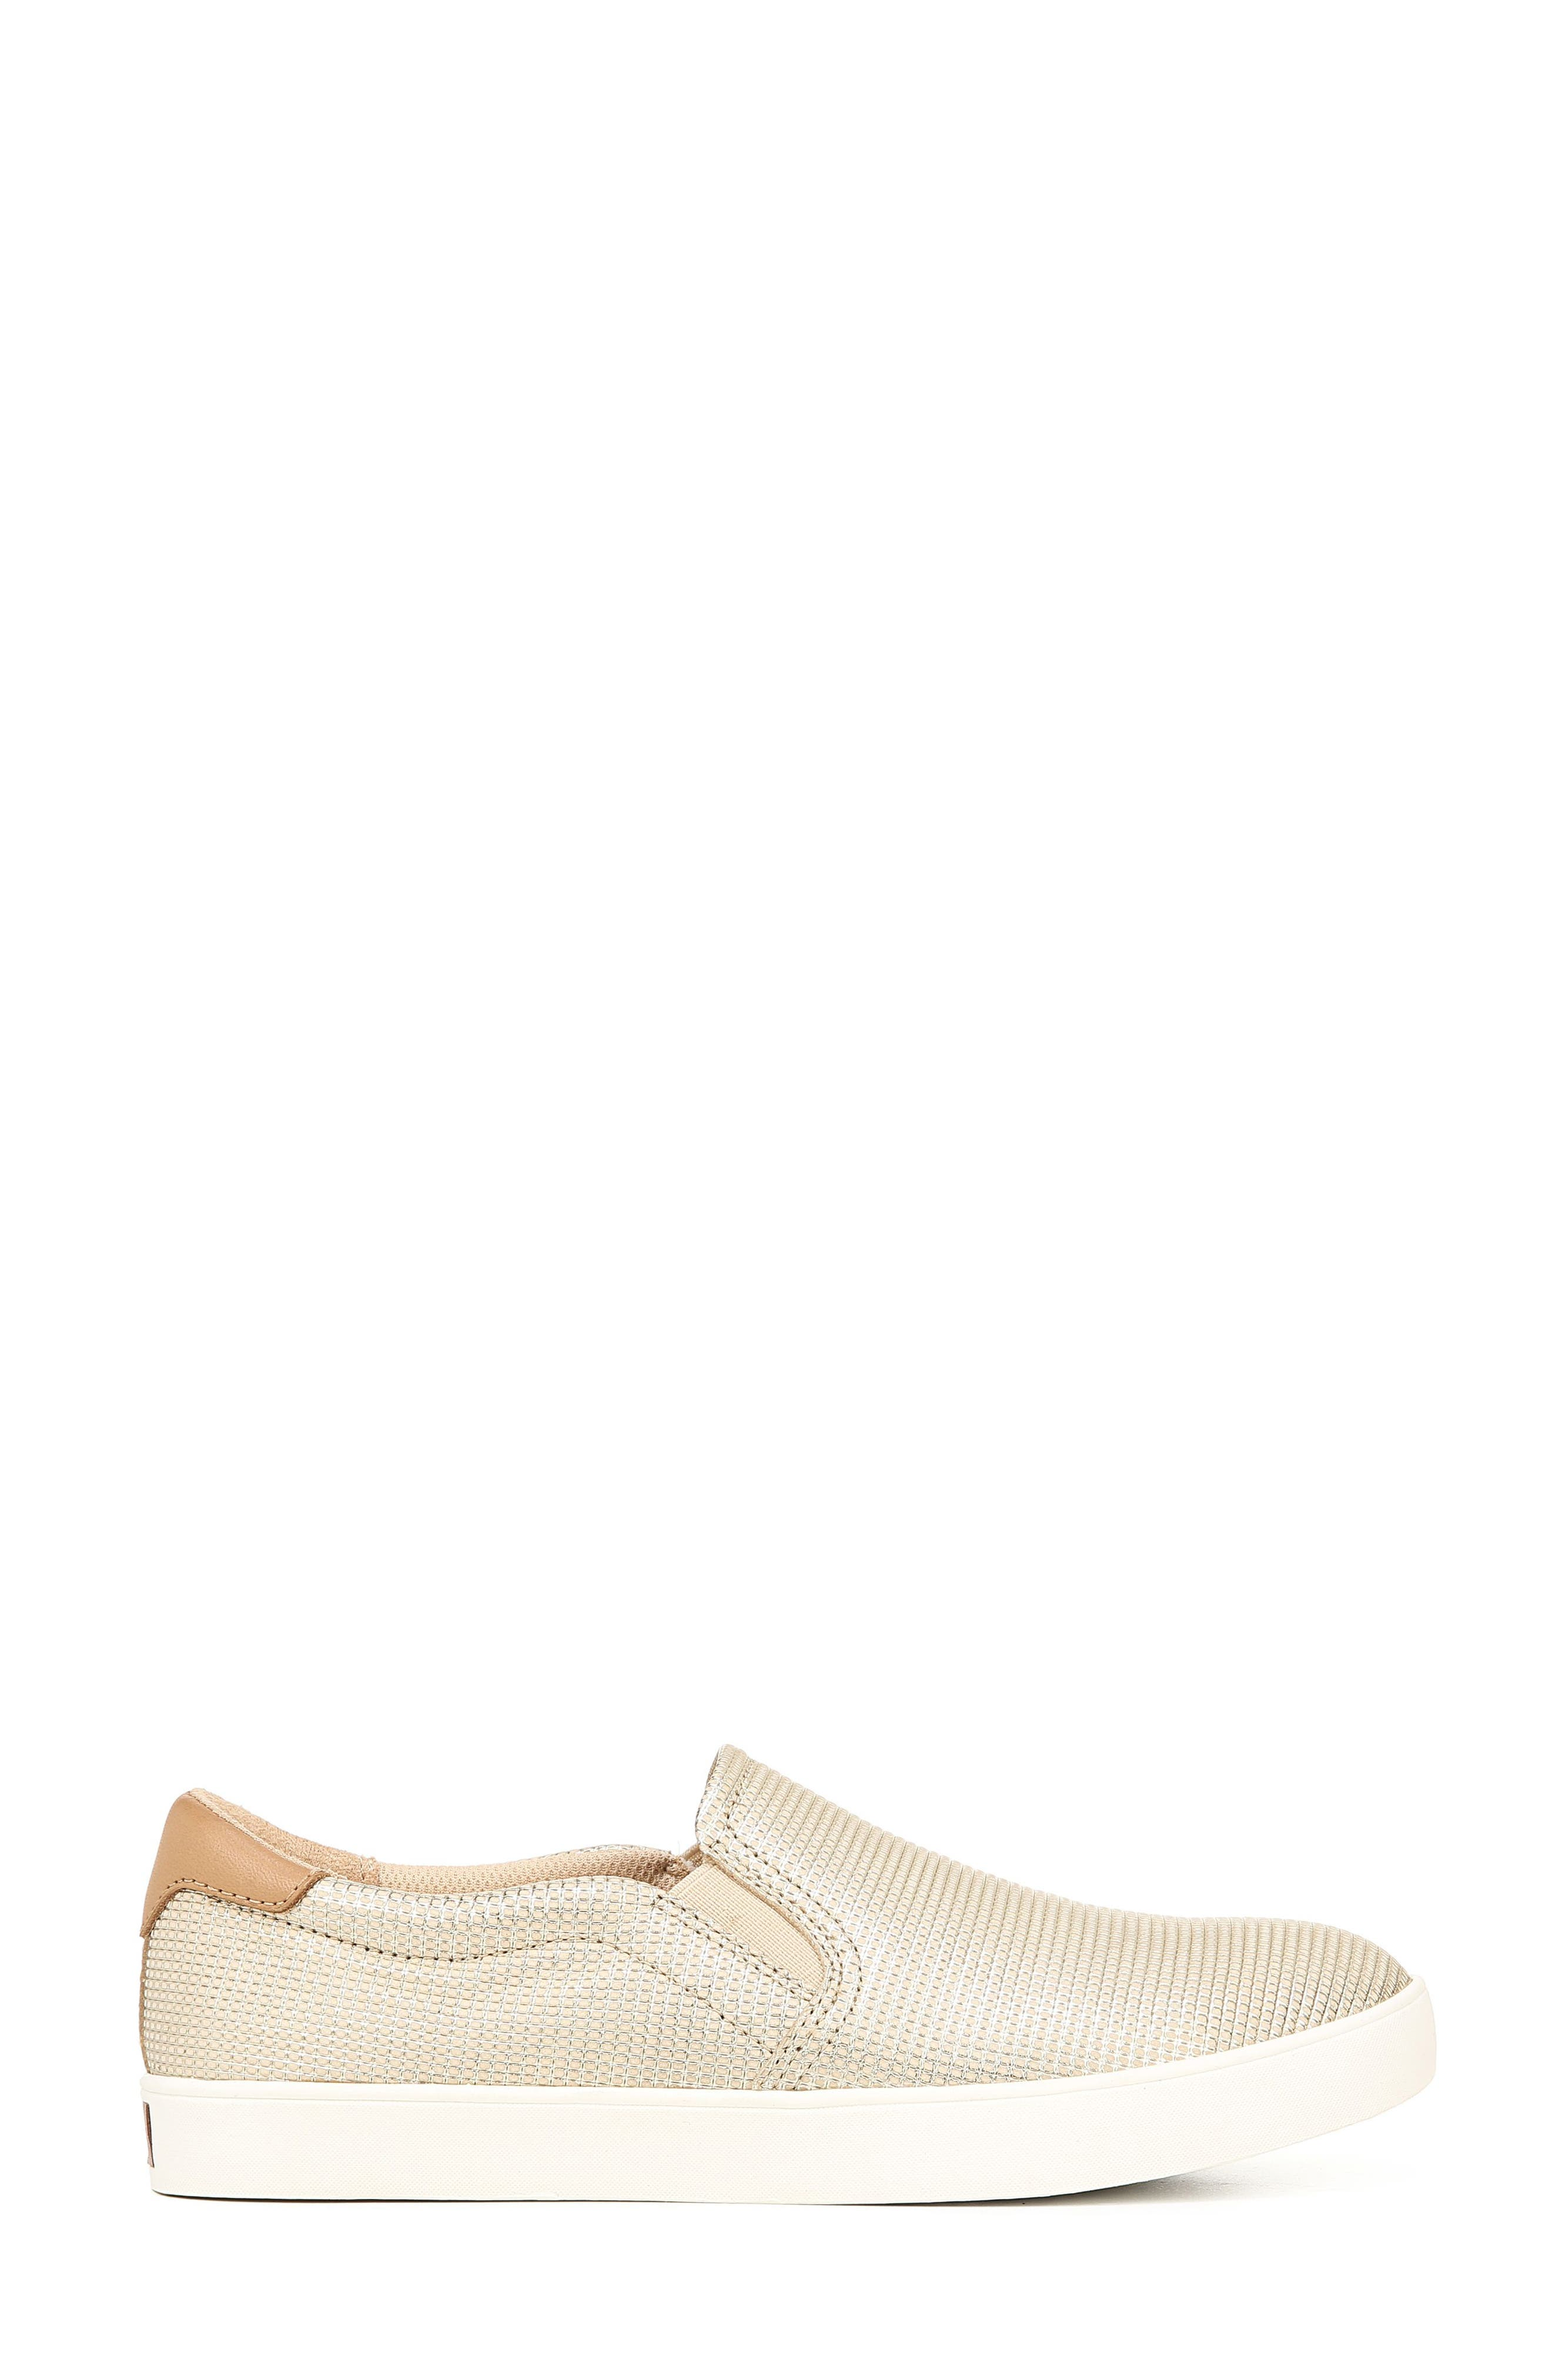 ,                             Original Collection 'Scout' Slip On Sneaker,                             Alternate thumbnail 3, color,                             BEIGE LEATHER